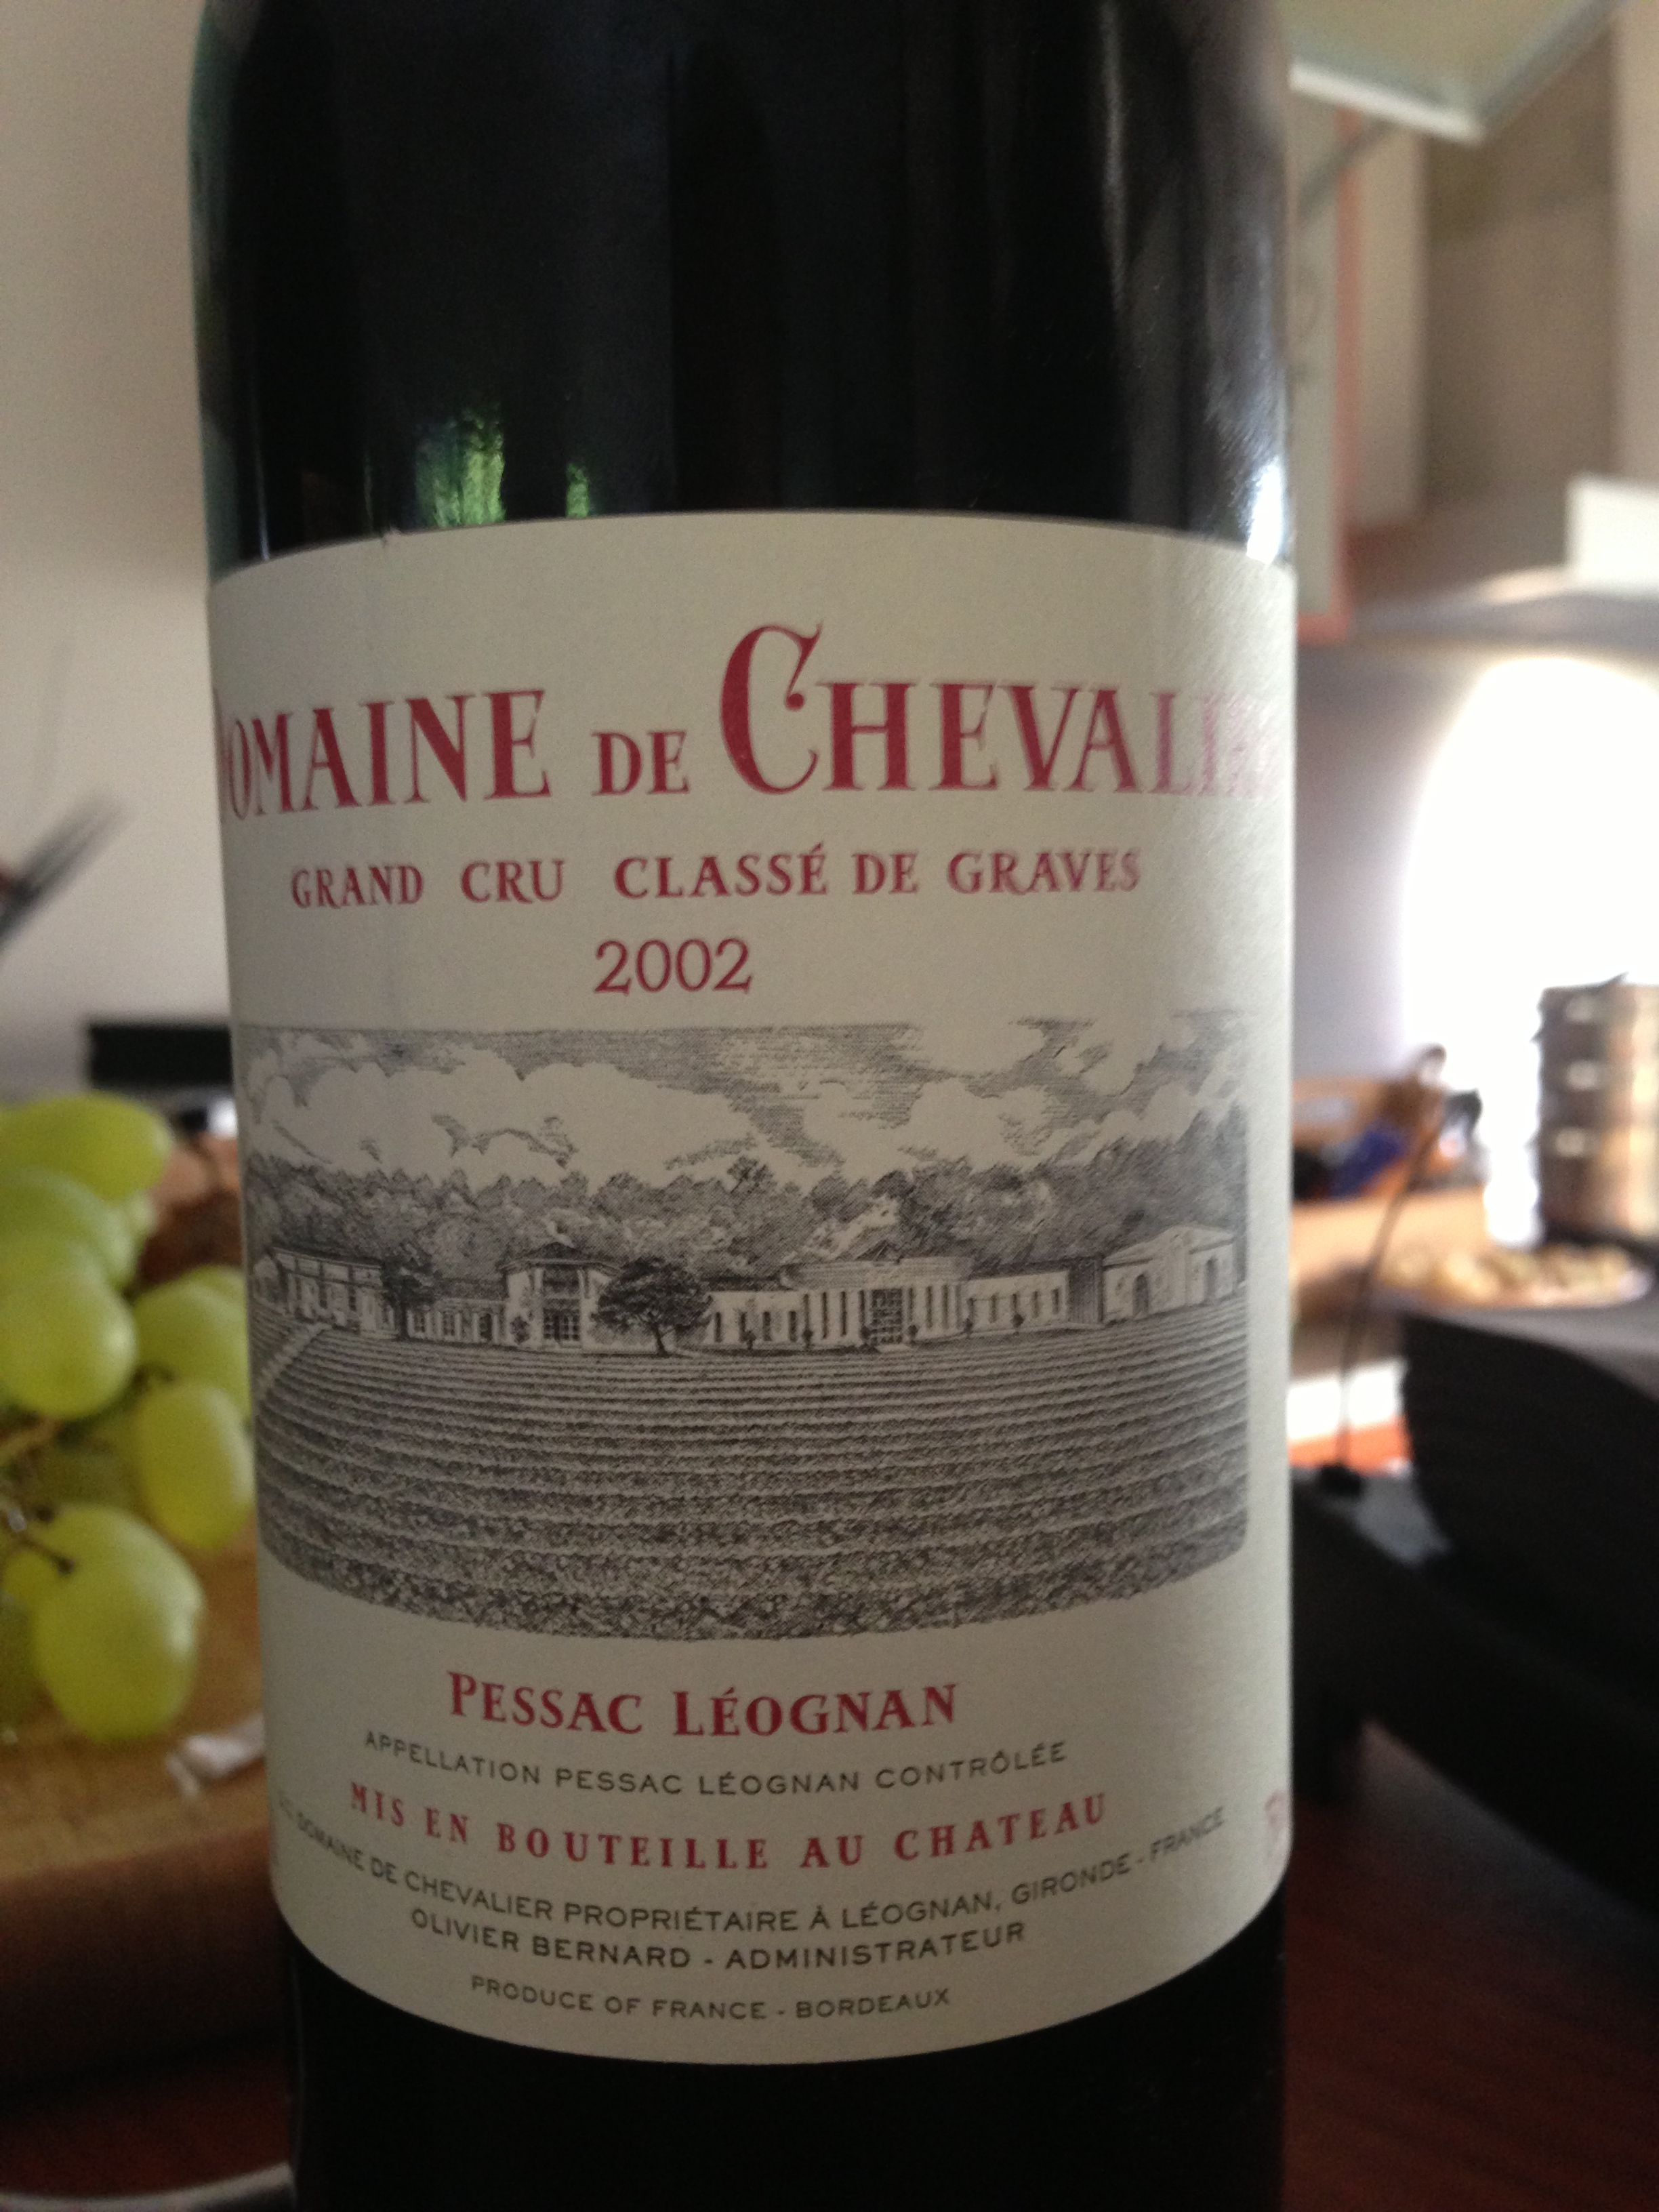 The birthday party moved on to a fuller Bordeaux, nice and rich